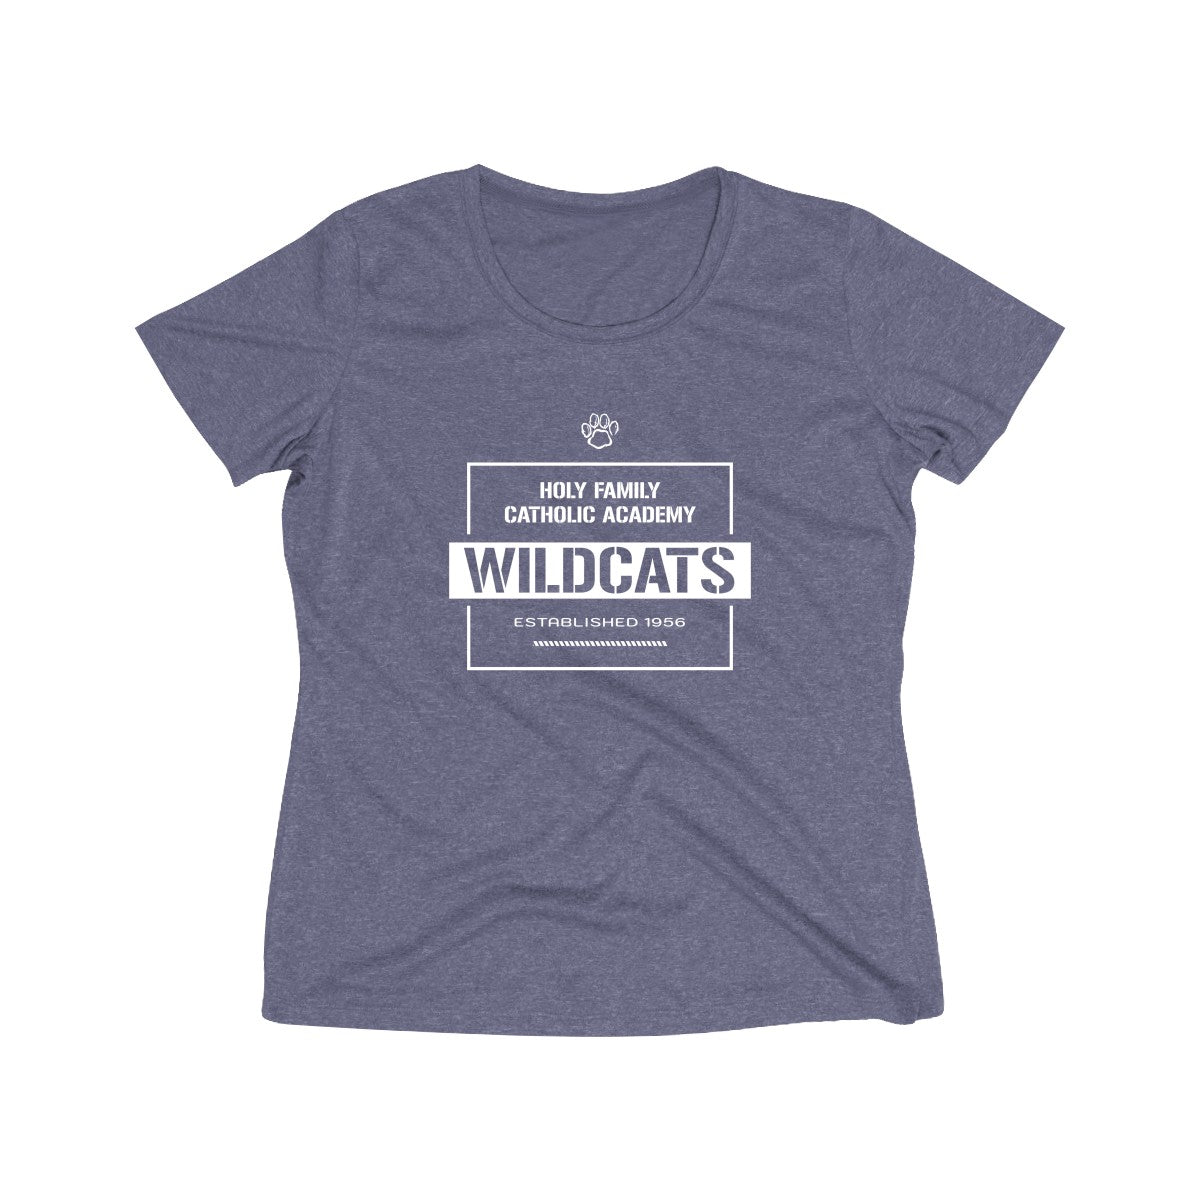 "Holy Family Catholic Academy (HFCA) - ""Warehouse"" - Women's Heather Wicking Tee"